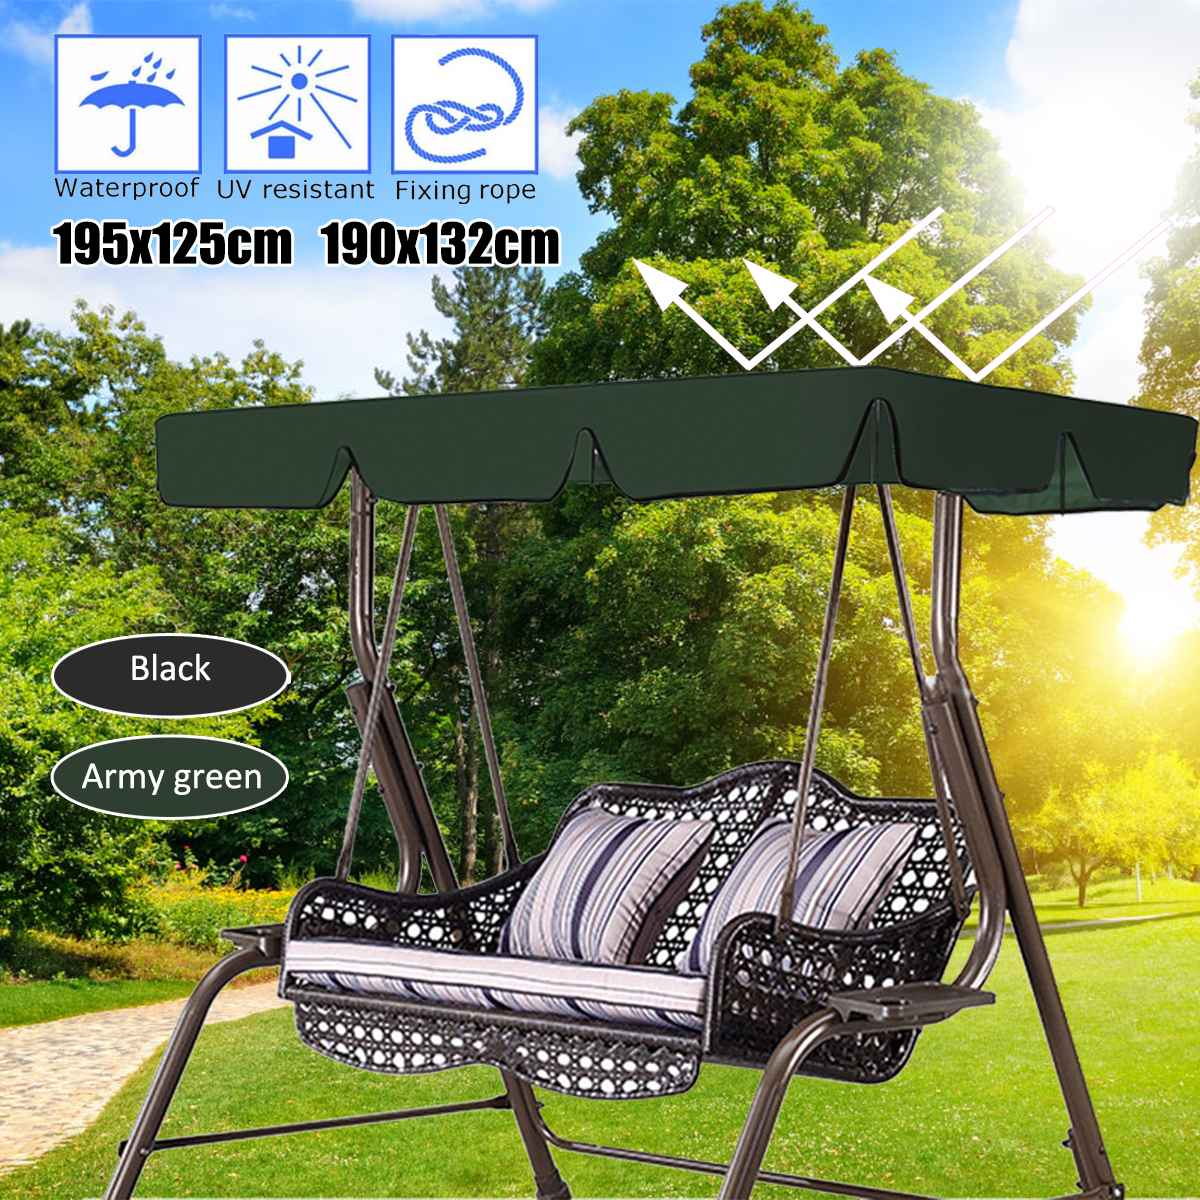 2 3 Seats Waterproof Swing Chair Top Cover Outdoor Canopy Replacement Garden Courtyard